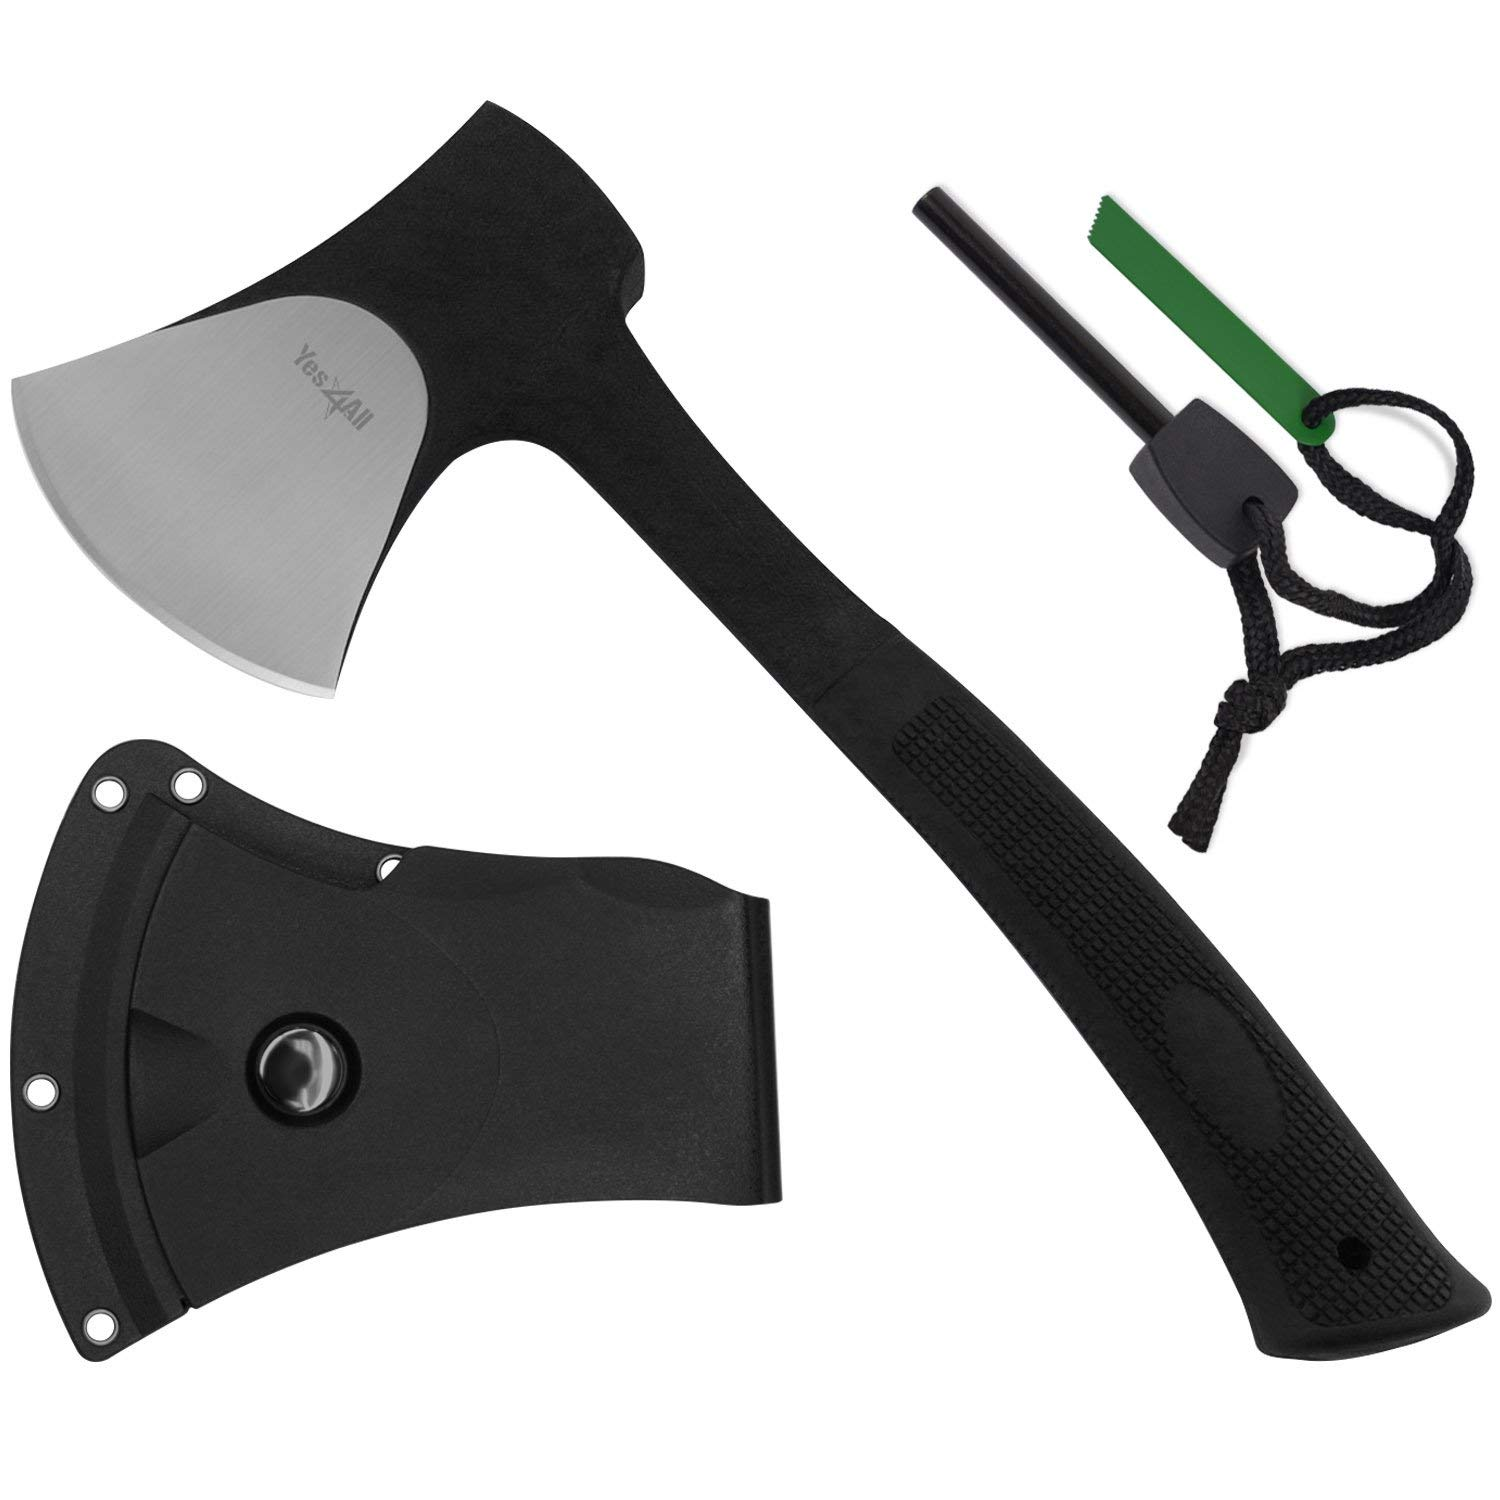 Yes4All Outdoor Camping Axe with Sheath + Fire Starter